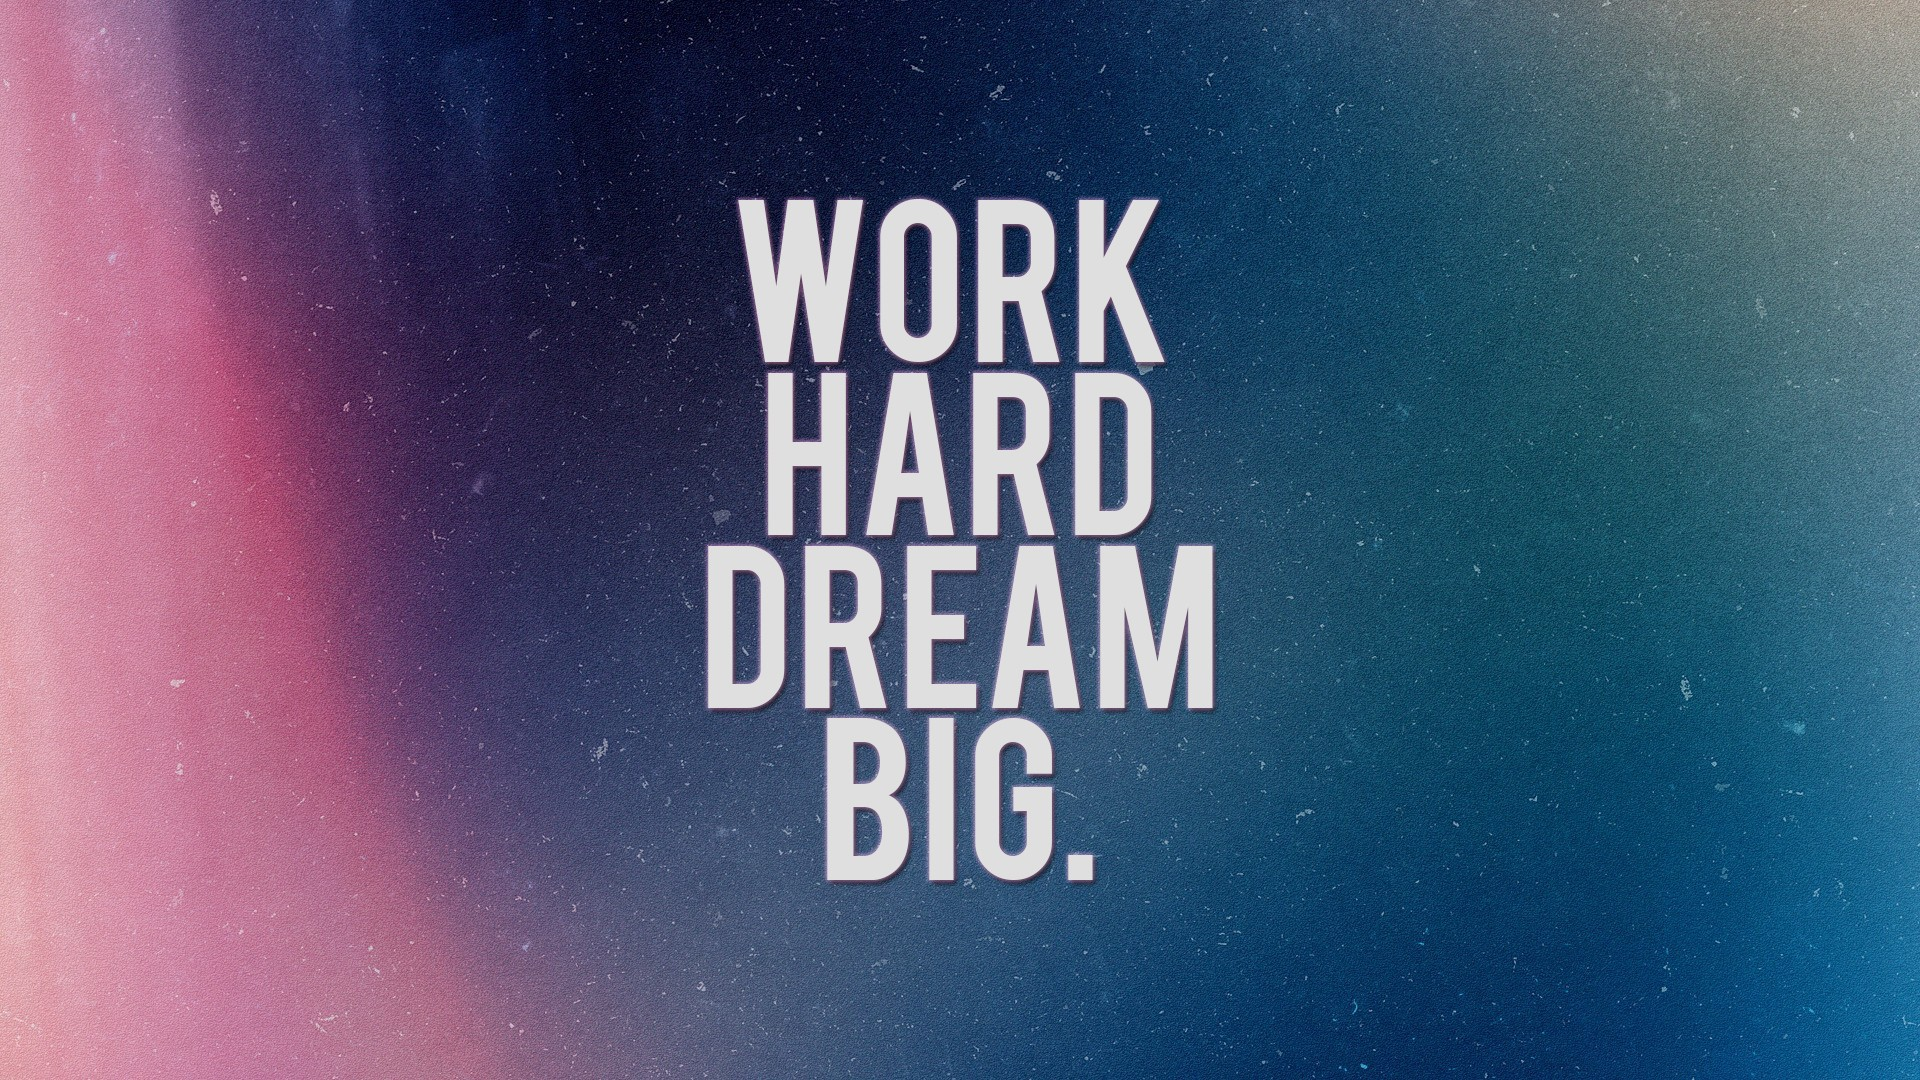 www.GetBg.net__Work_hard_hard__dream_free_089814_